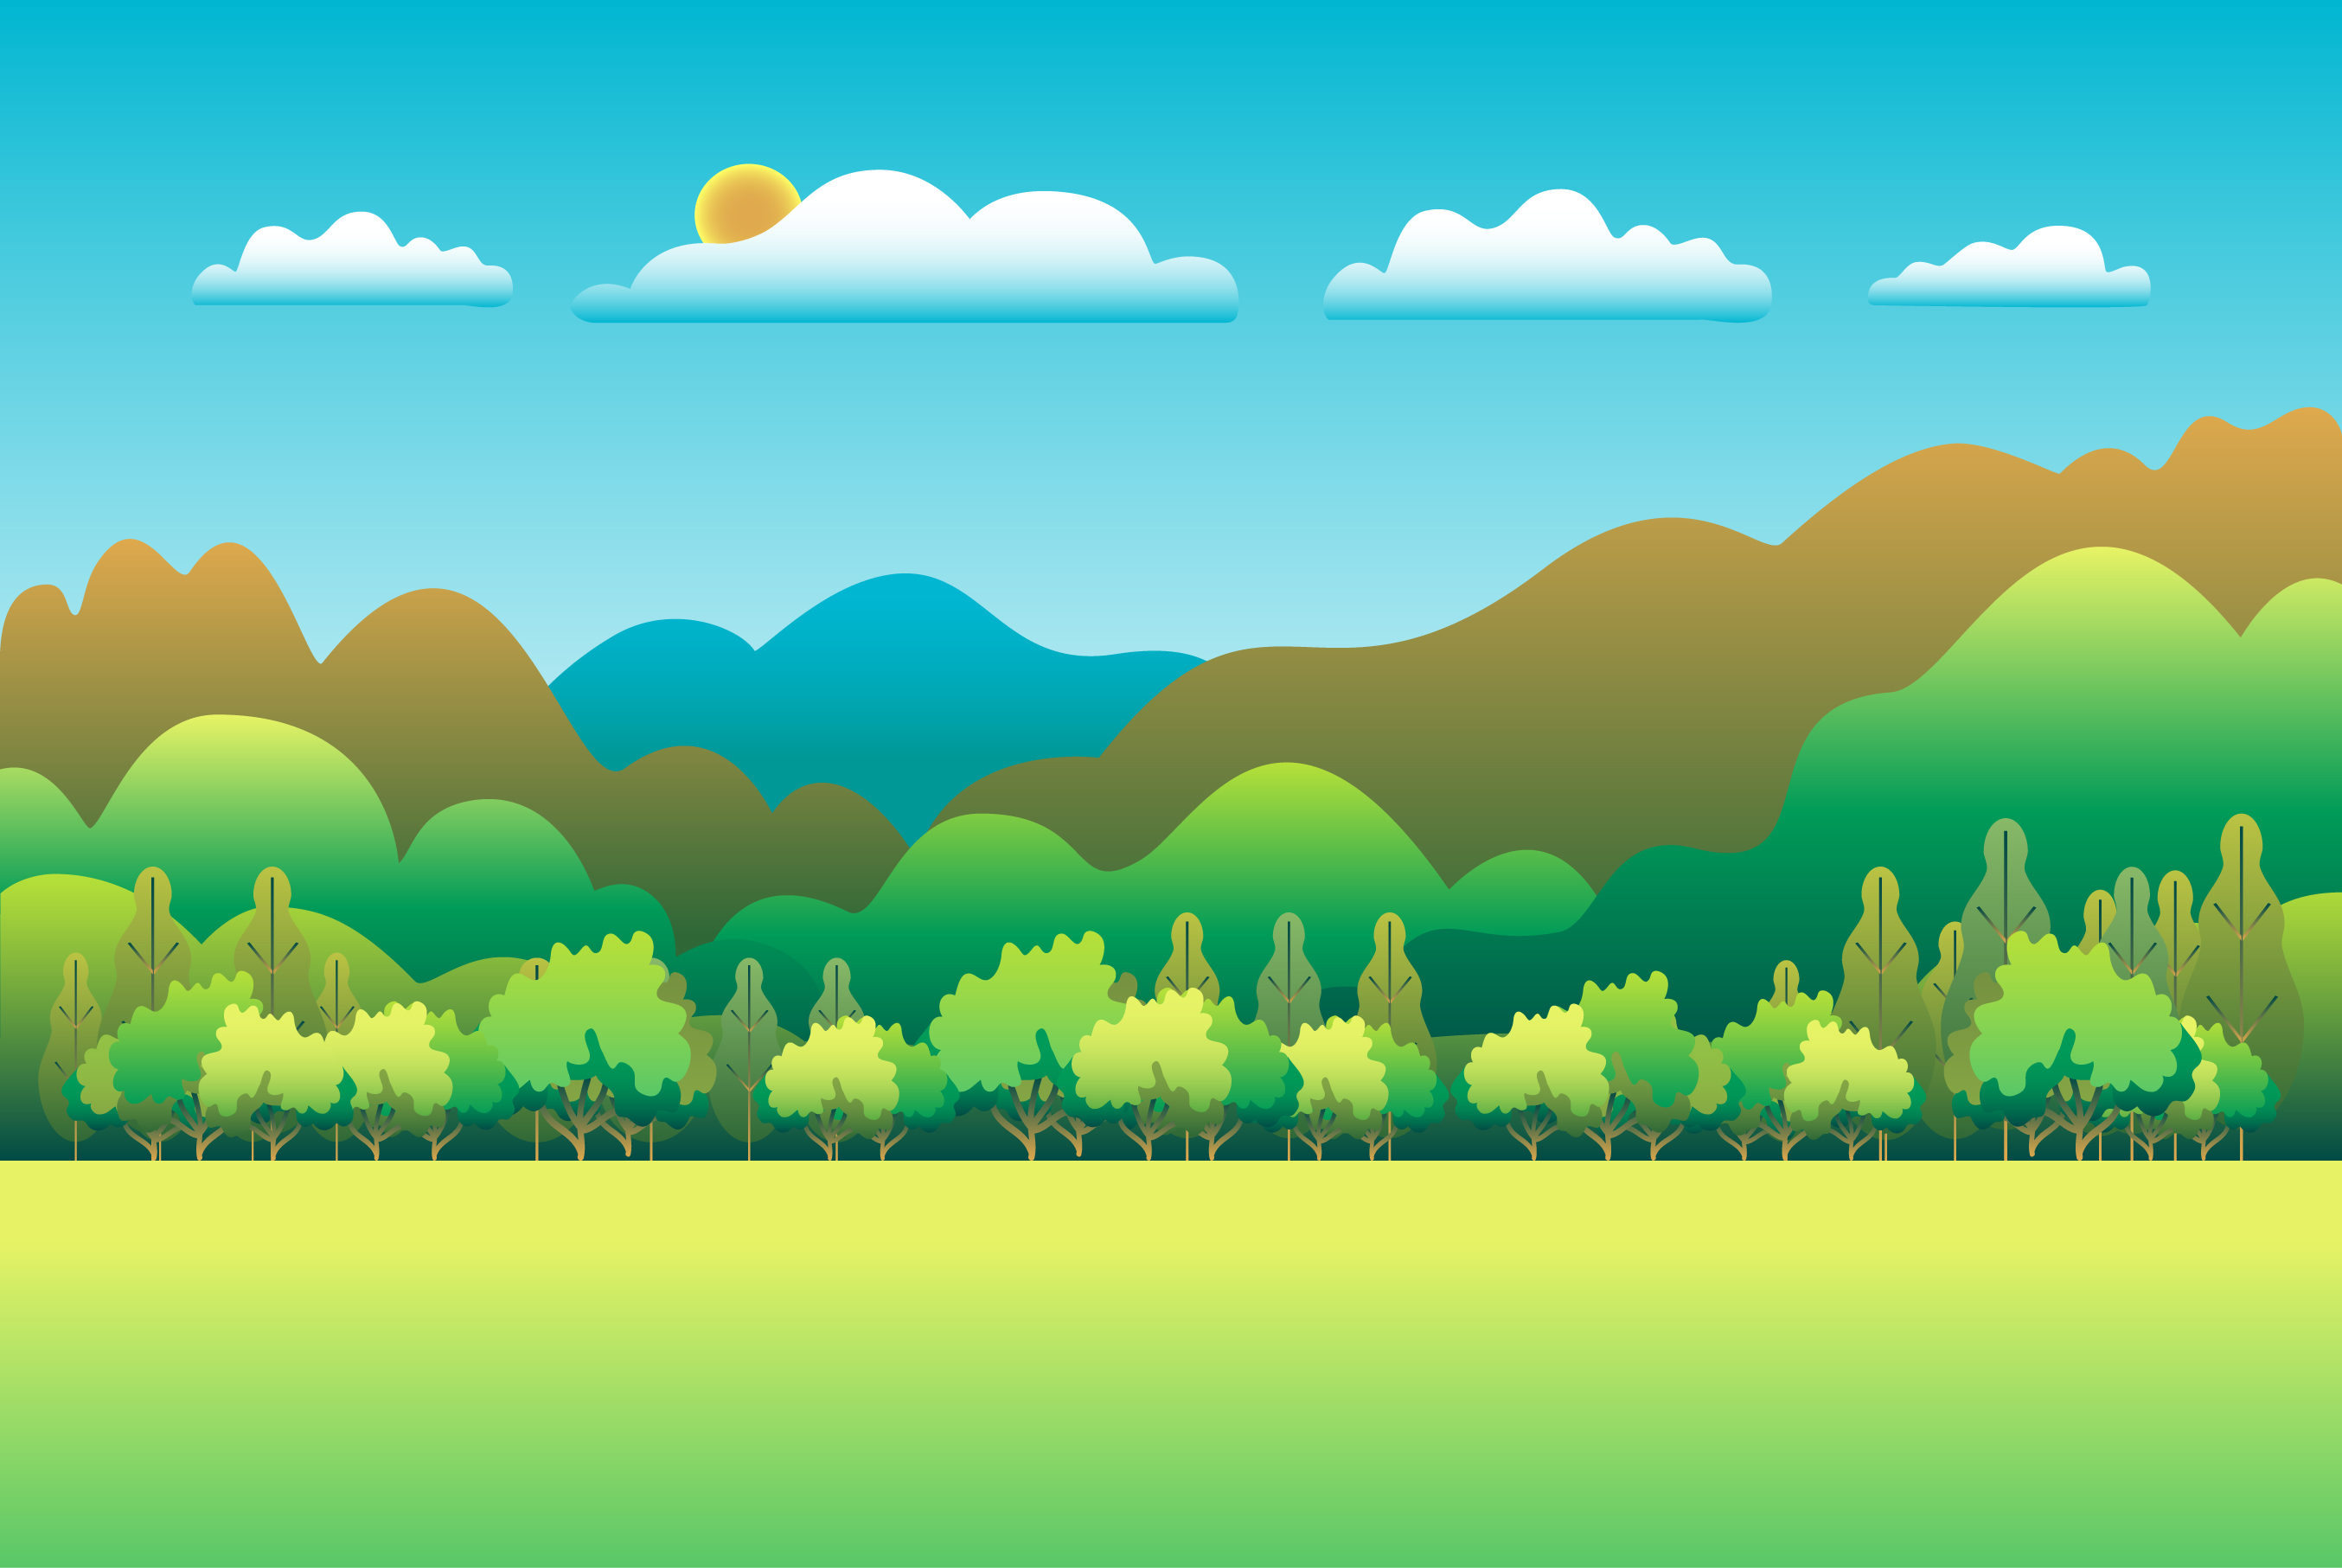 Hills and mountains landscape in flat style design example image 1